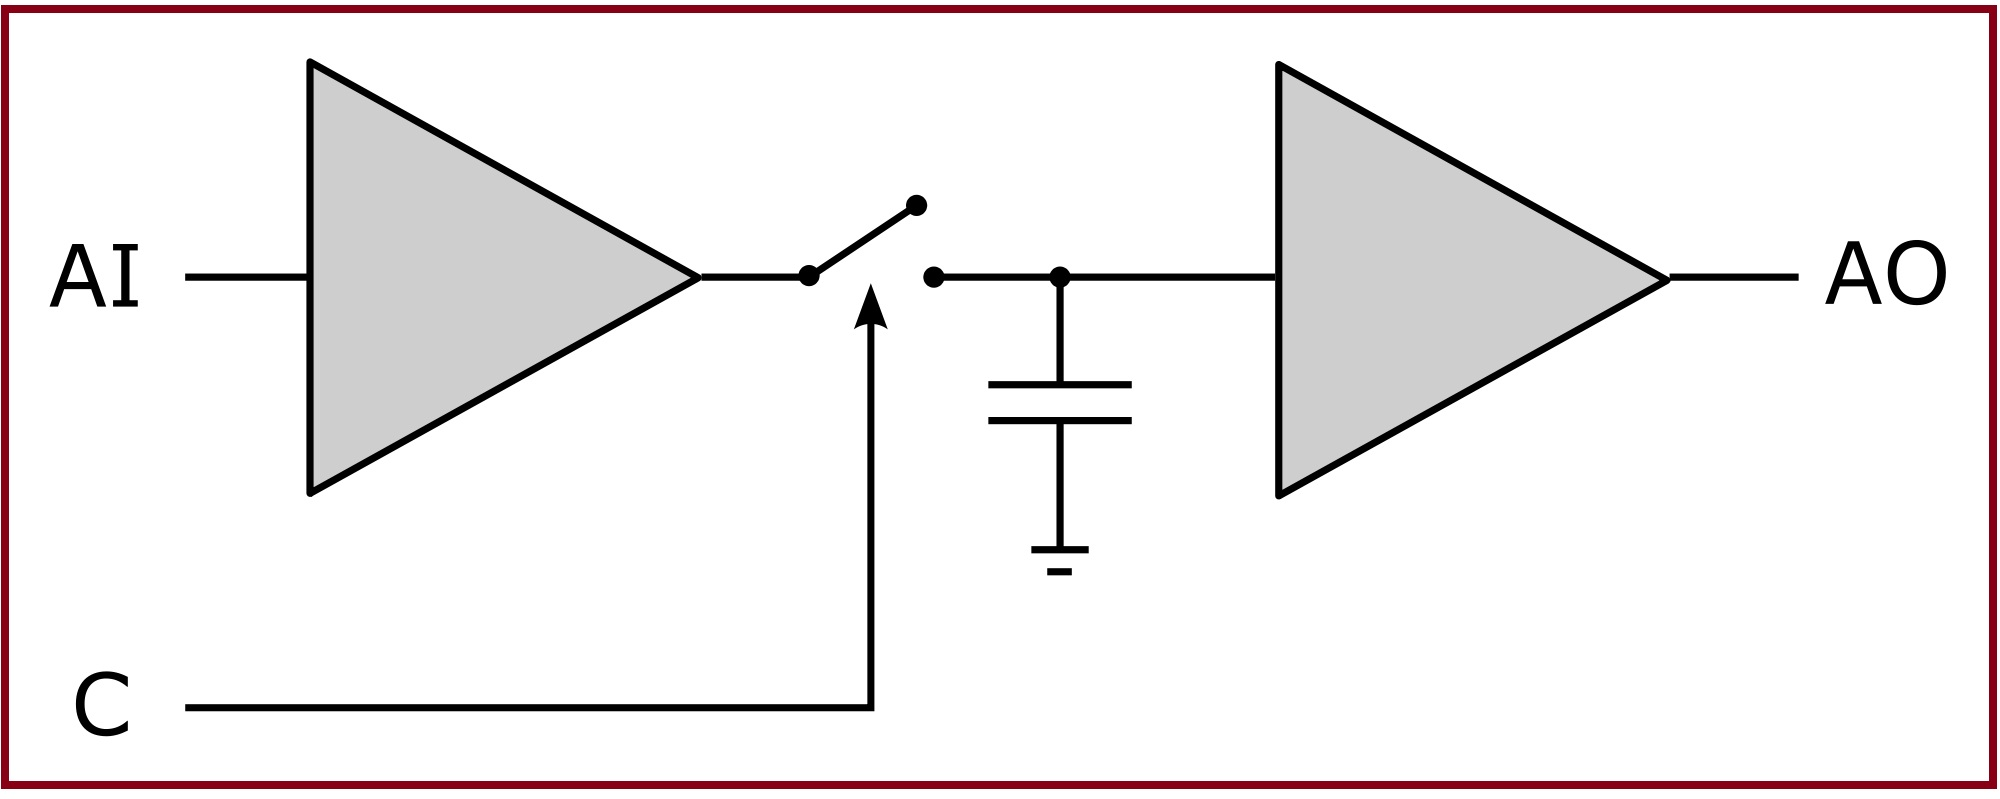 Simple Digital Pulser Circuit Diagram Designing Of A Sample And Hold Using Op Amp